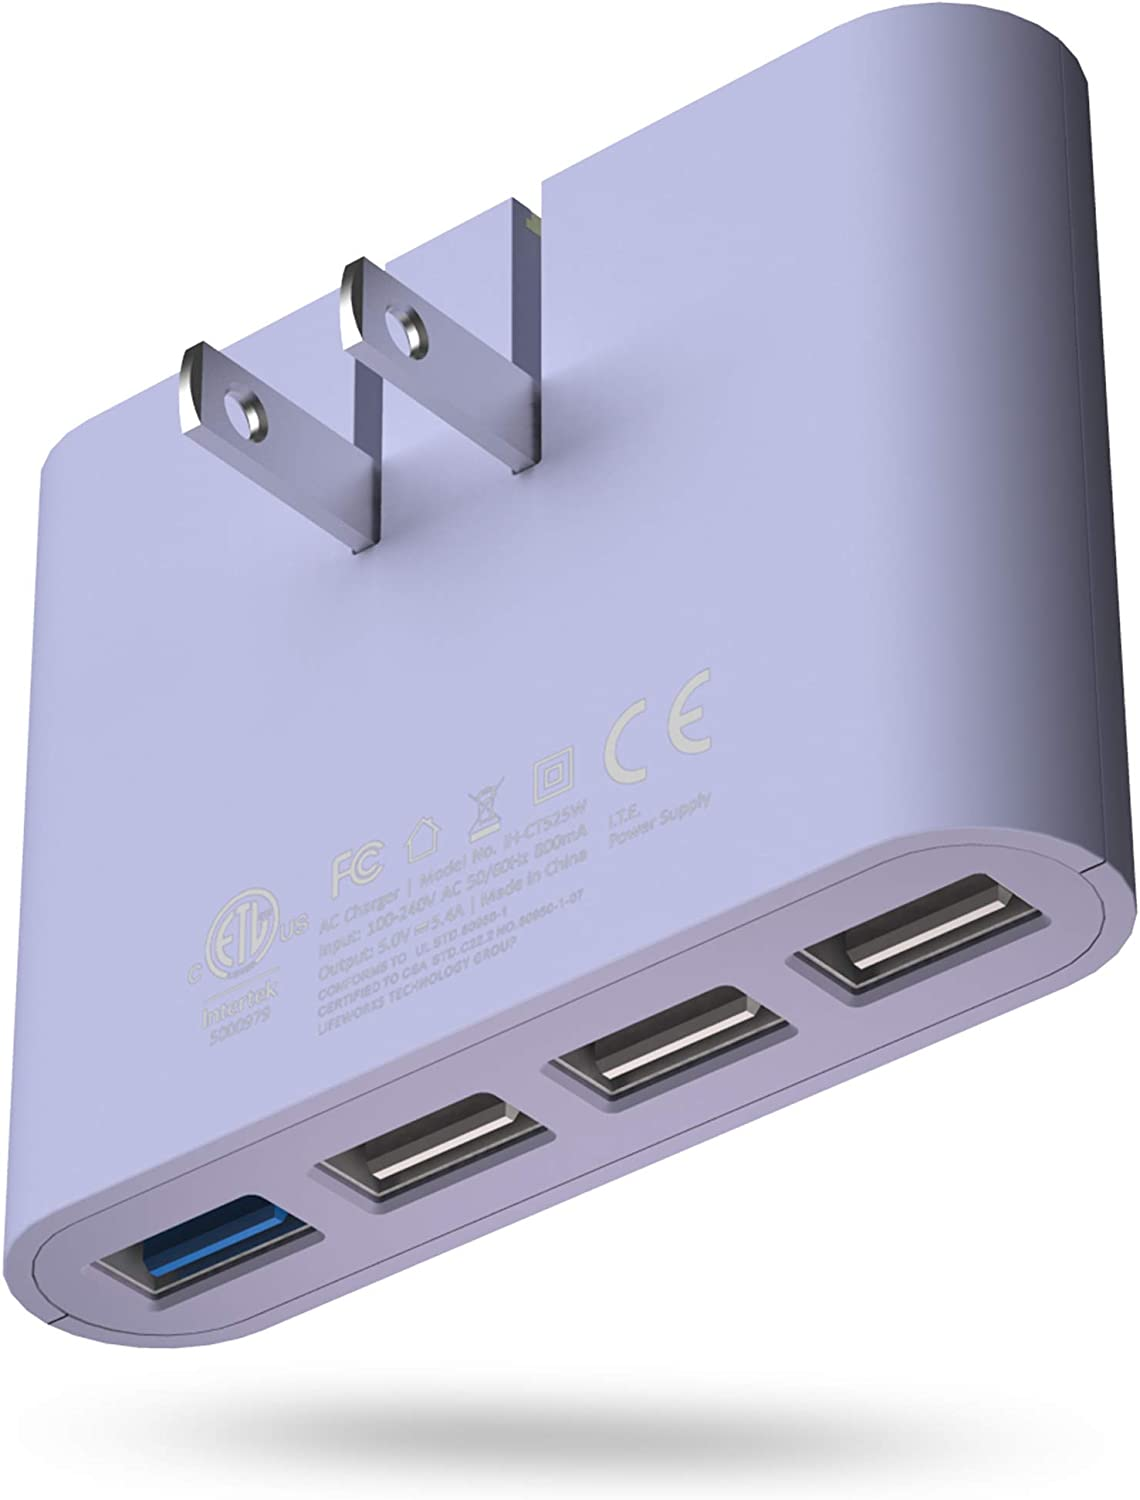 iHome AC Pro 4.4 Amp 4-Port USB Wall or Travel Charger, Flat Foldable Plug for iPhone 11, 11 Pro, 11 Pro Max, Xs, Xs Max, XR, X, 8, Airpods, iPad, Samsung Galaxy Android & More – Pastel Purple